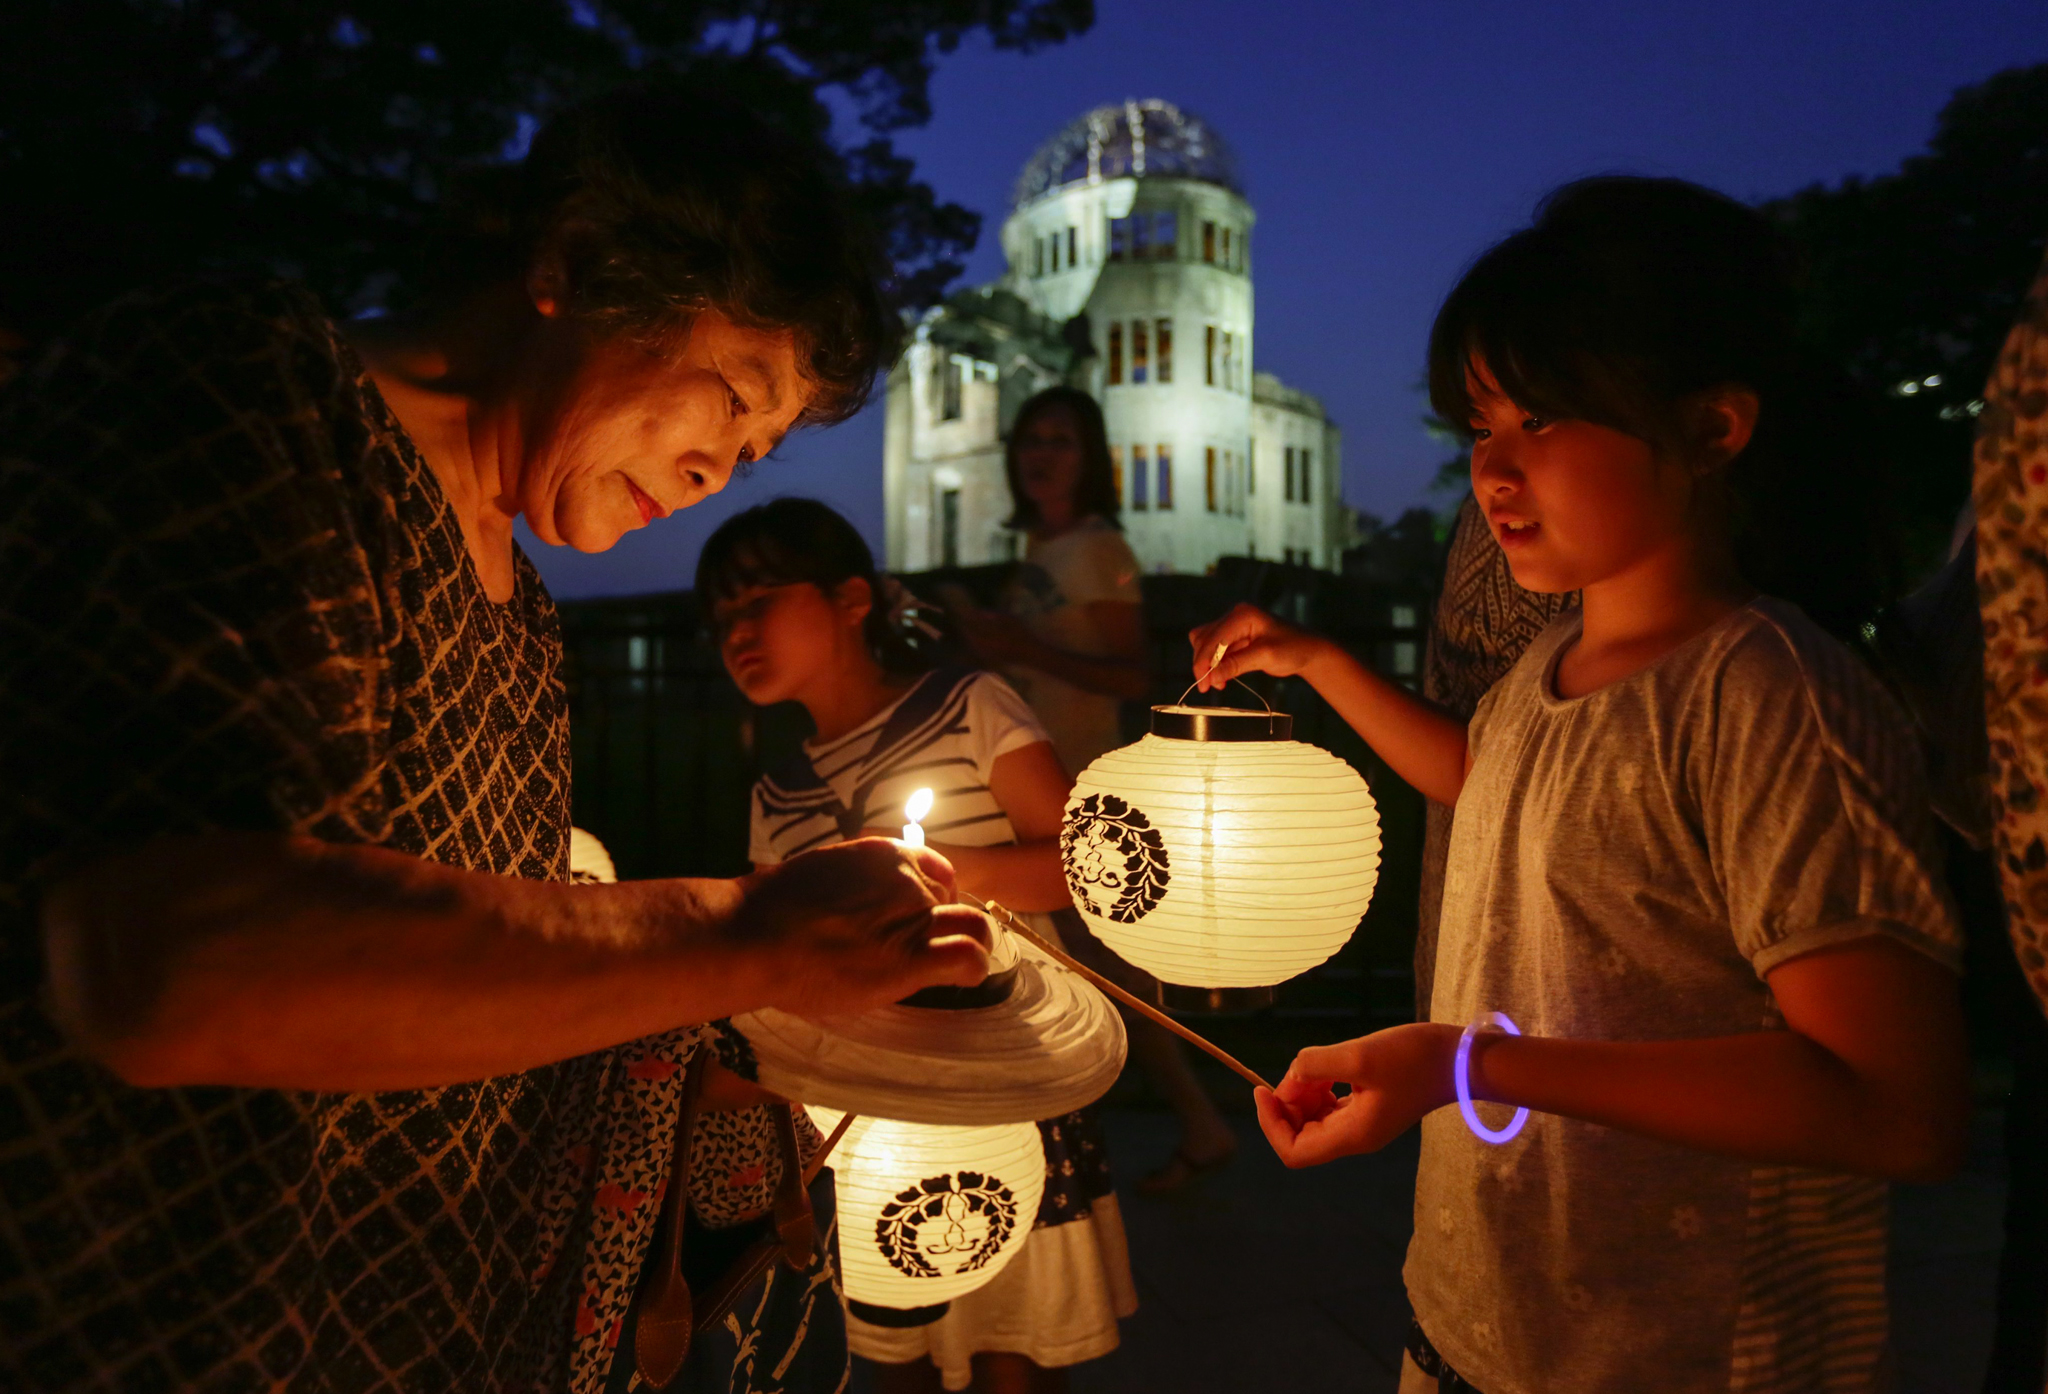 An elderly Hiroshima resident lights the candle of her grand daughter's paper lantern to prepare for a lantern procession to comfort souls of victims killed by the atomic bomb in front of the Atomic Bomb Dome at Hiroshima Peace Memorial Peace Park, in Hiroshima, Japan.